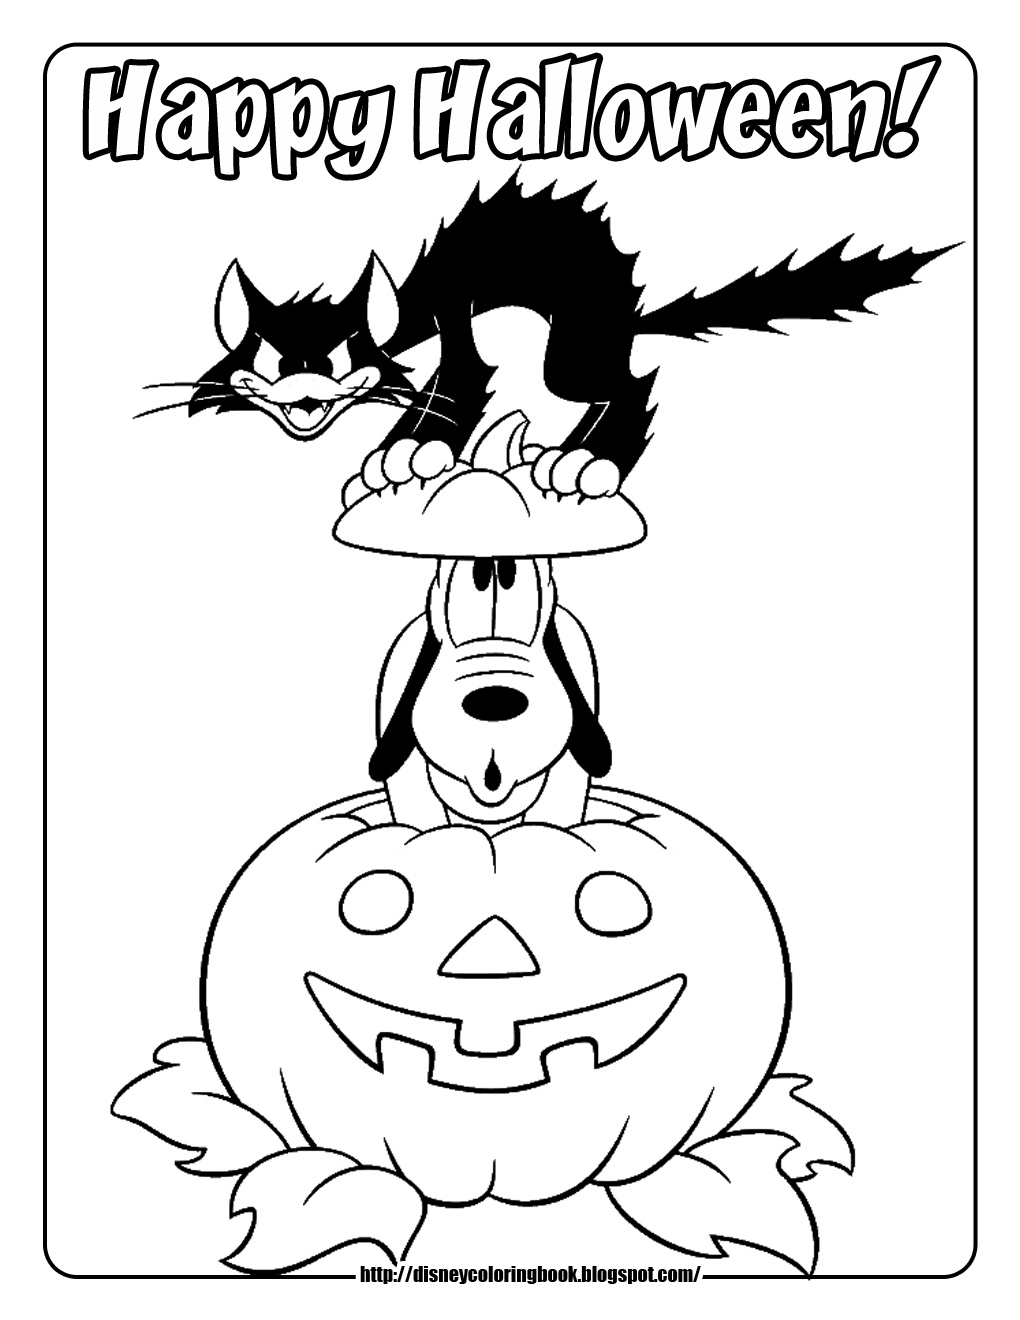 pumpkin halloween coloring pages - Halloween Coloring Pages on Pinterest Halloween